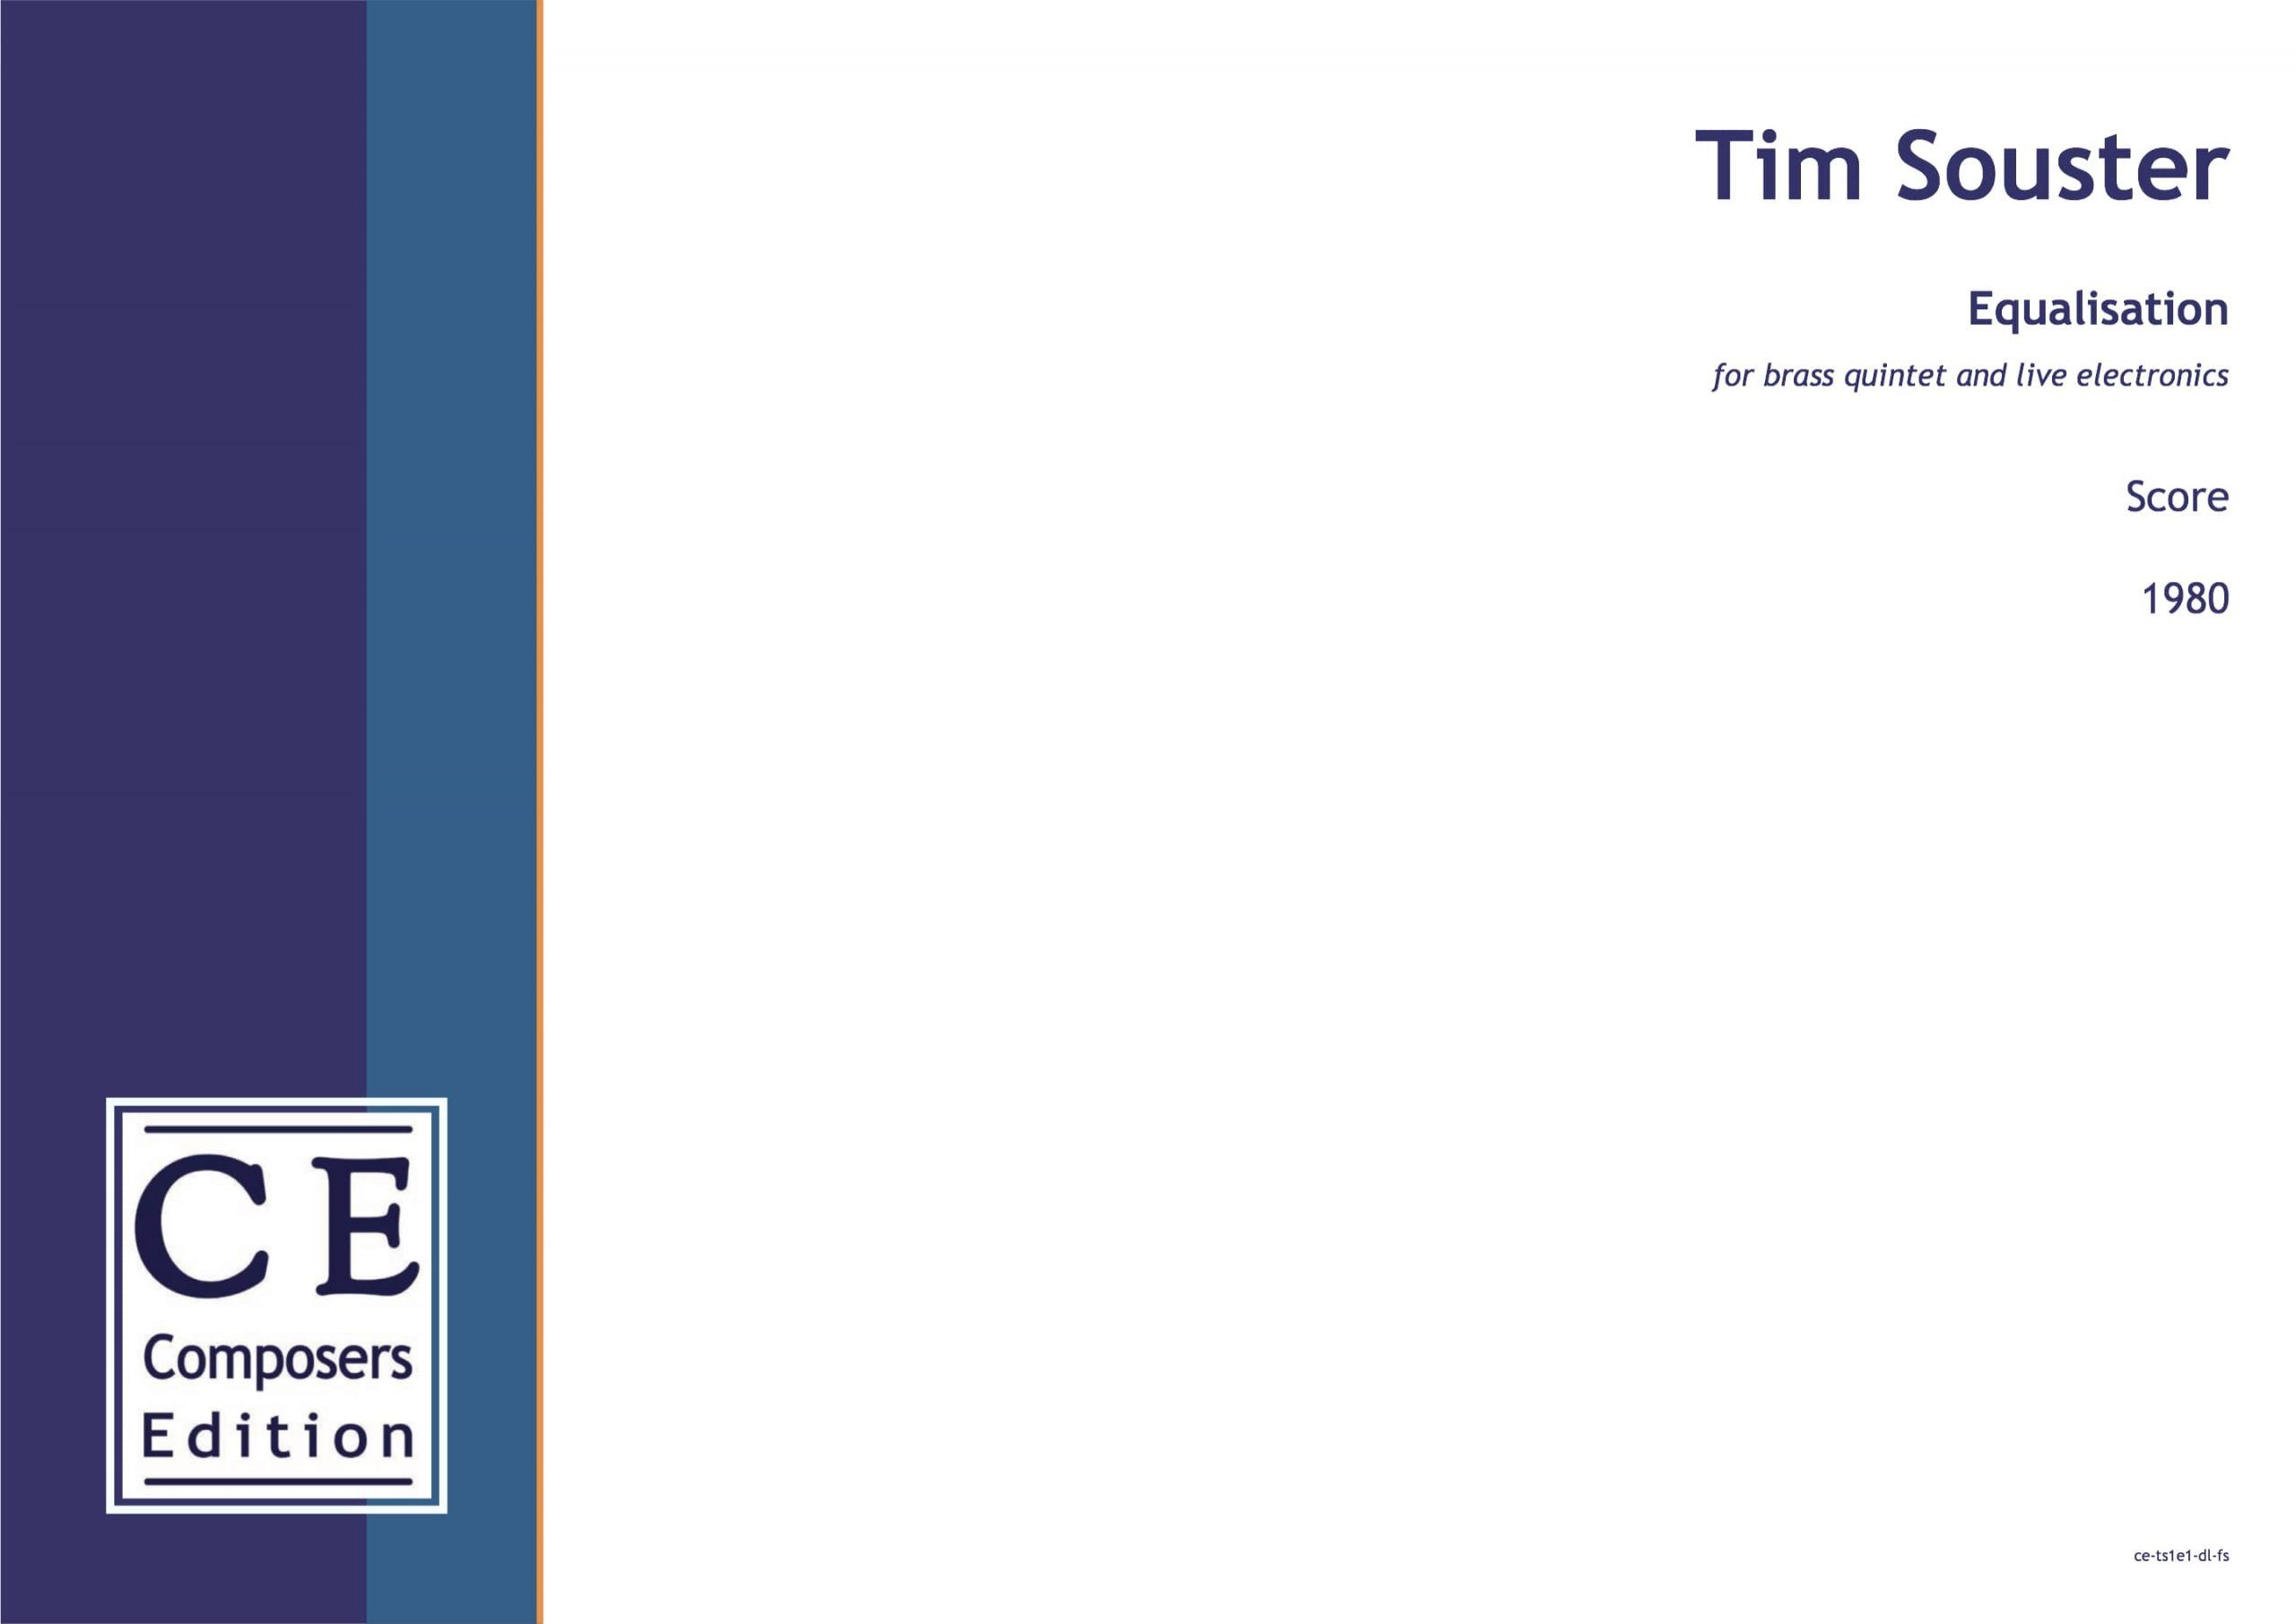 Tim Souster: Equalisation for brass quintet and live electronics